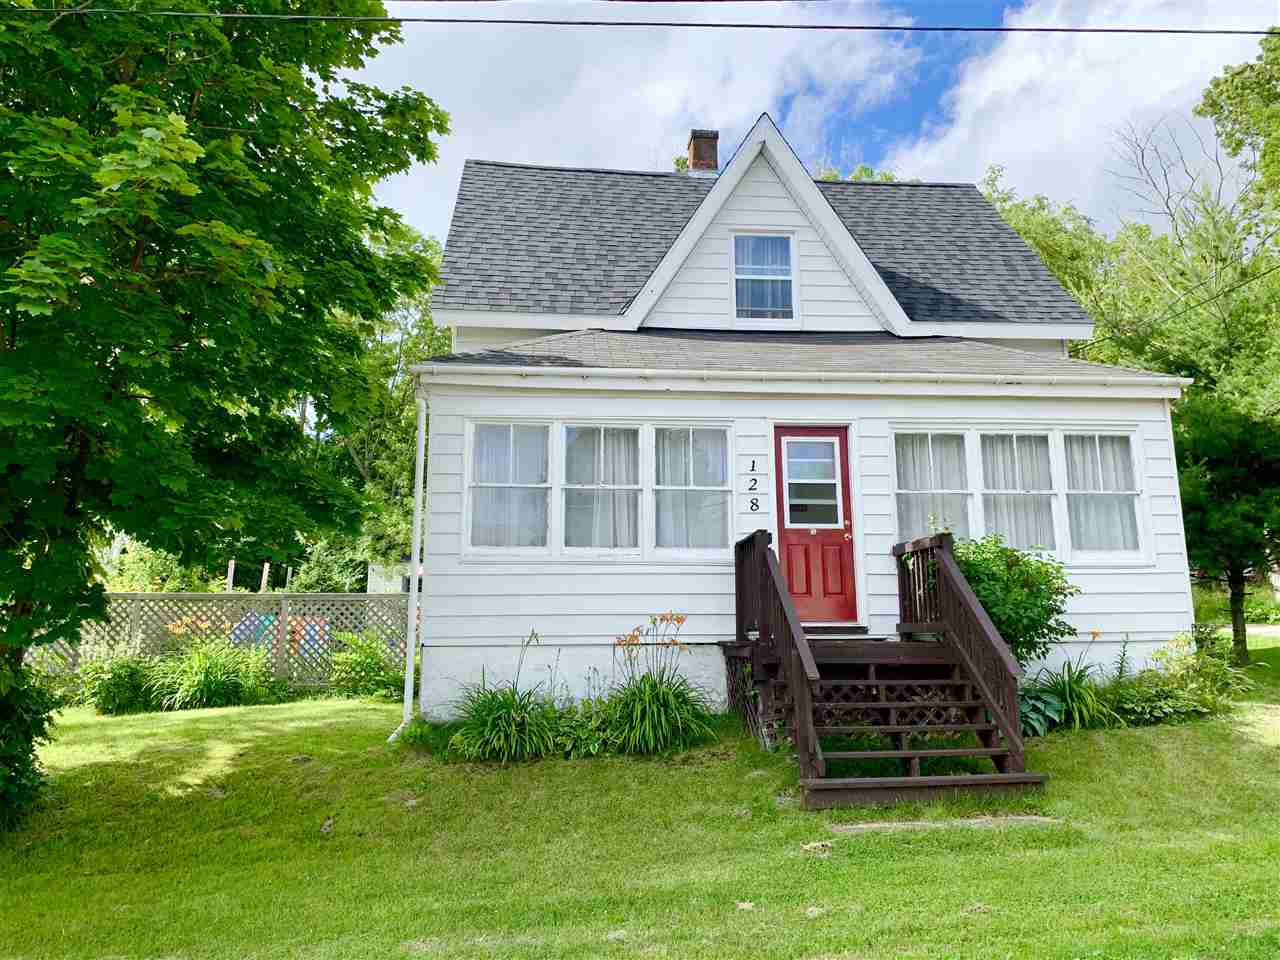 Main Photo: 128 High Street in Pictou: 107-Trenton,Westville,Pictou Residential for sale (Northern Region)  : MLS®# 202012904